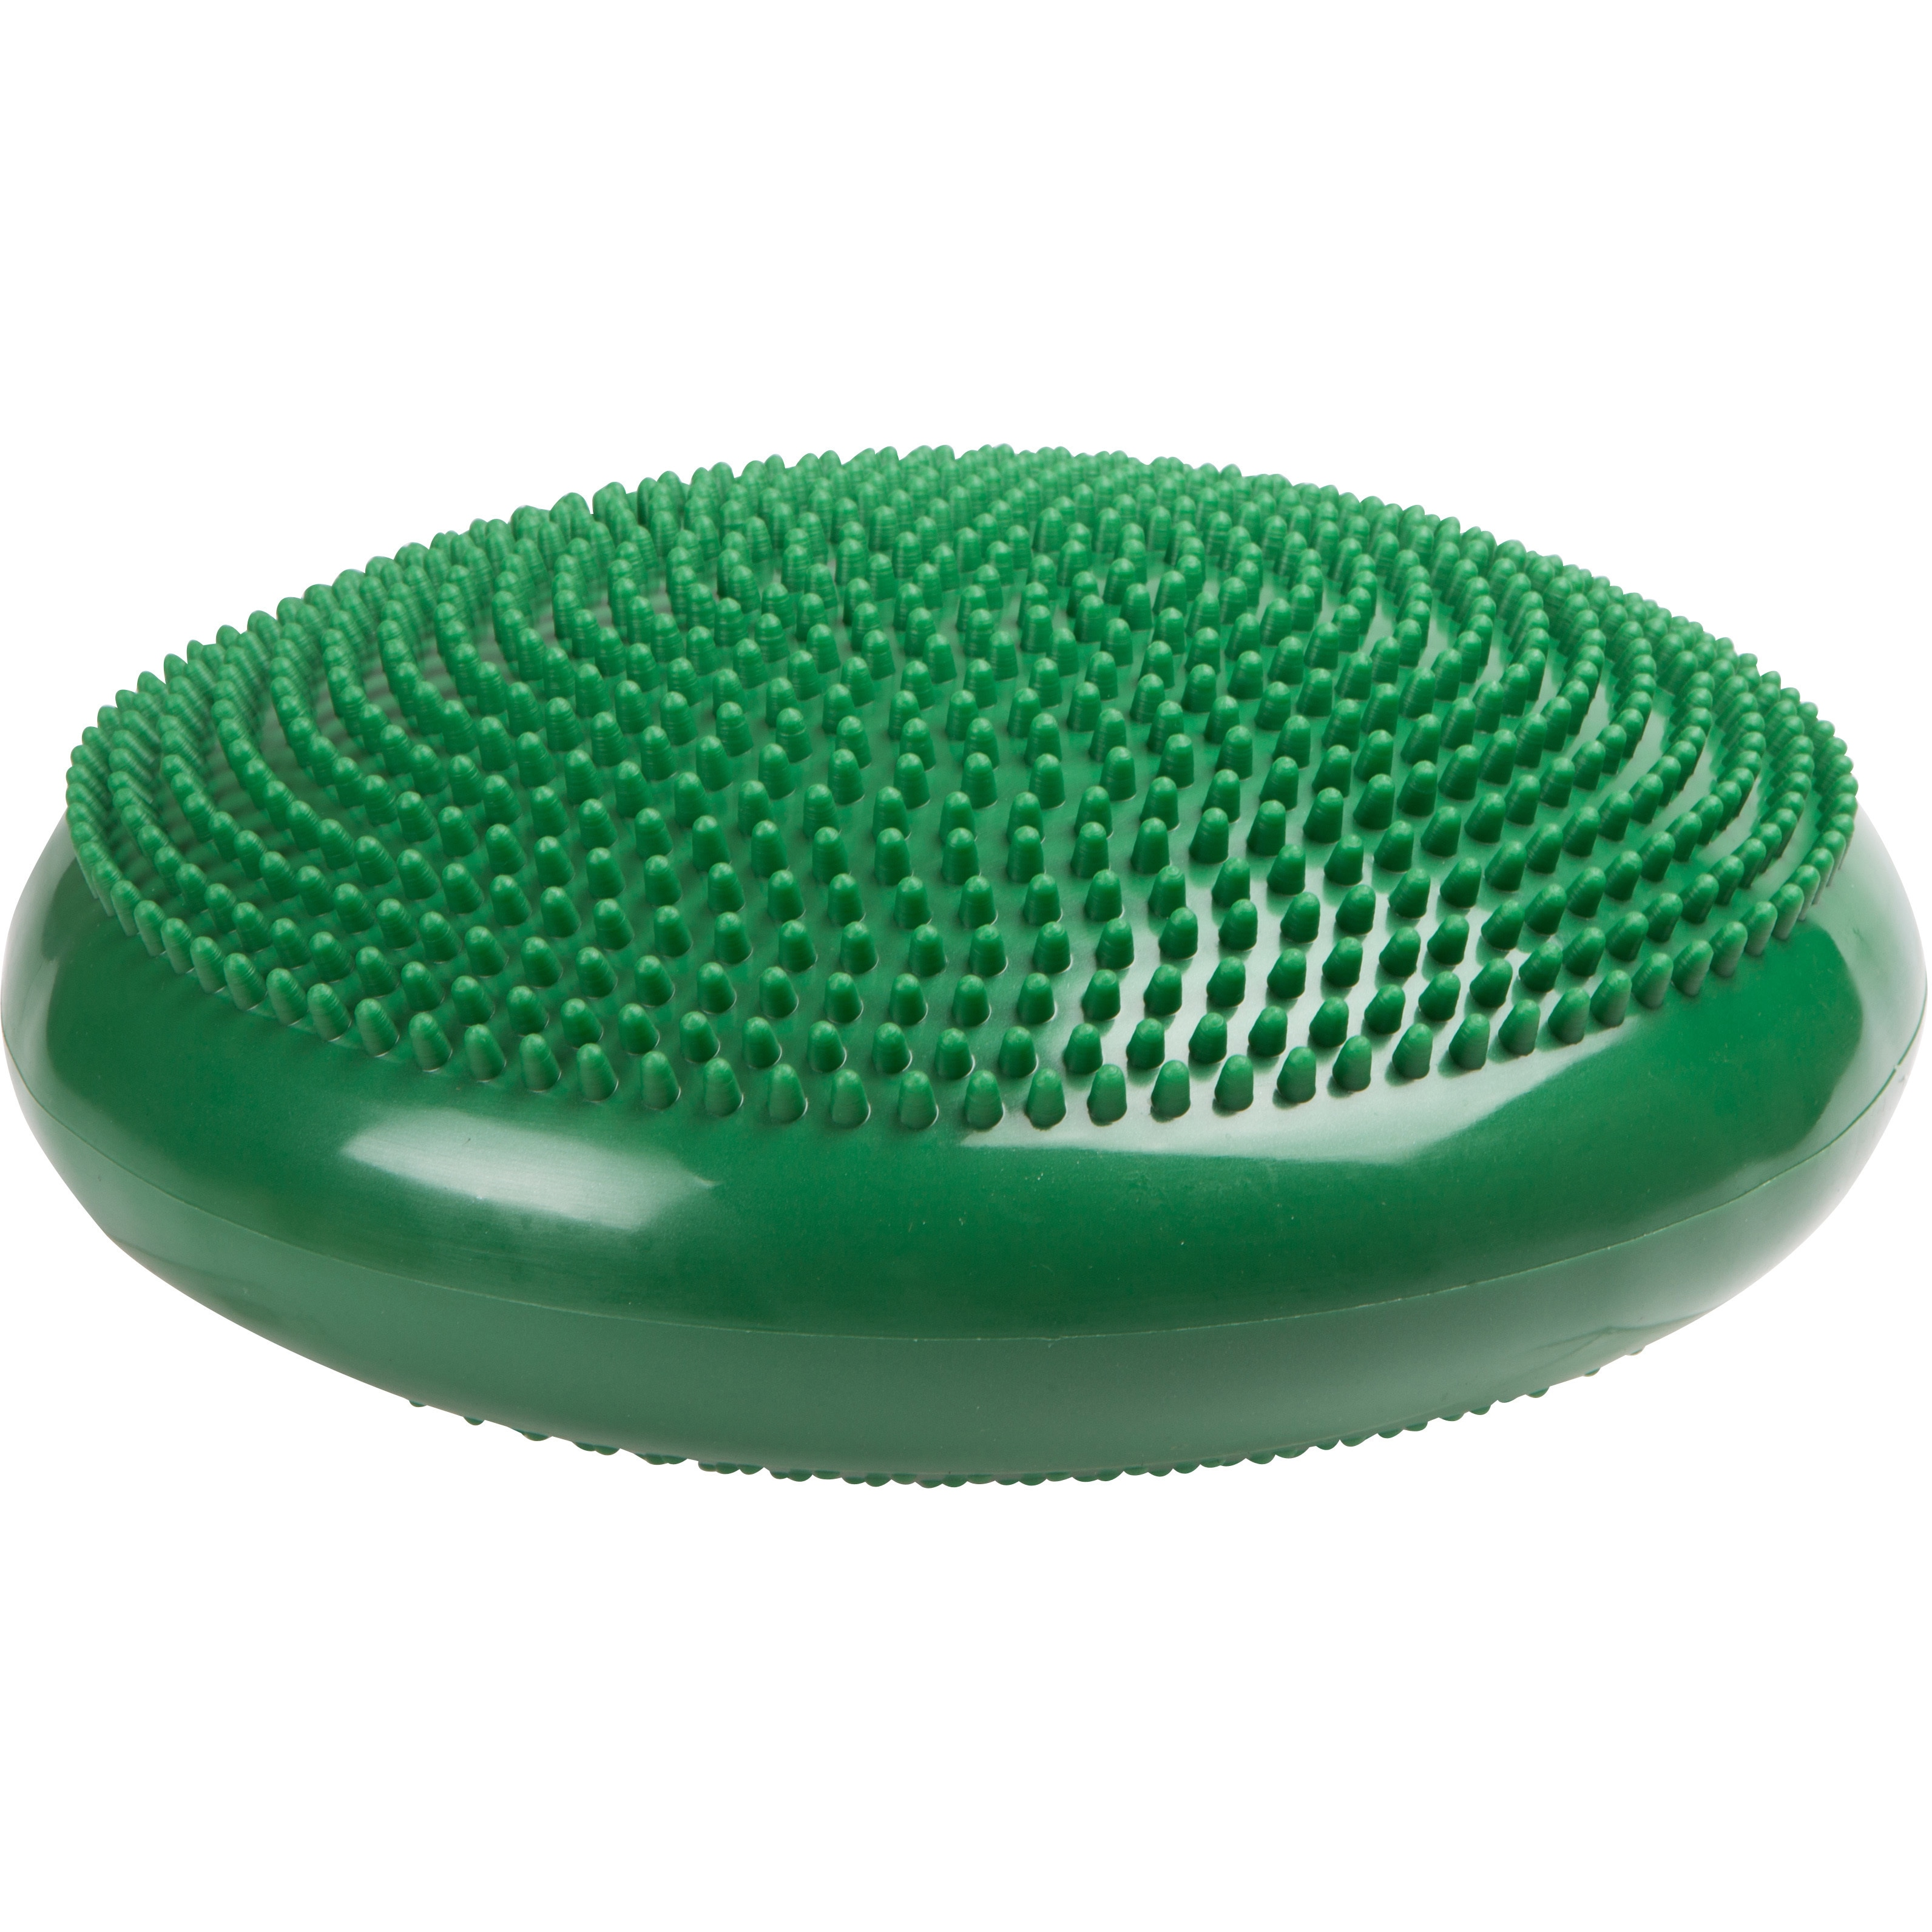 PVC Fitness and Balance Disc - 13-Inch Diameter - By Trademark Innovations (Green)